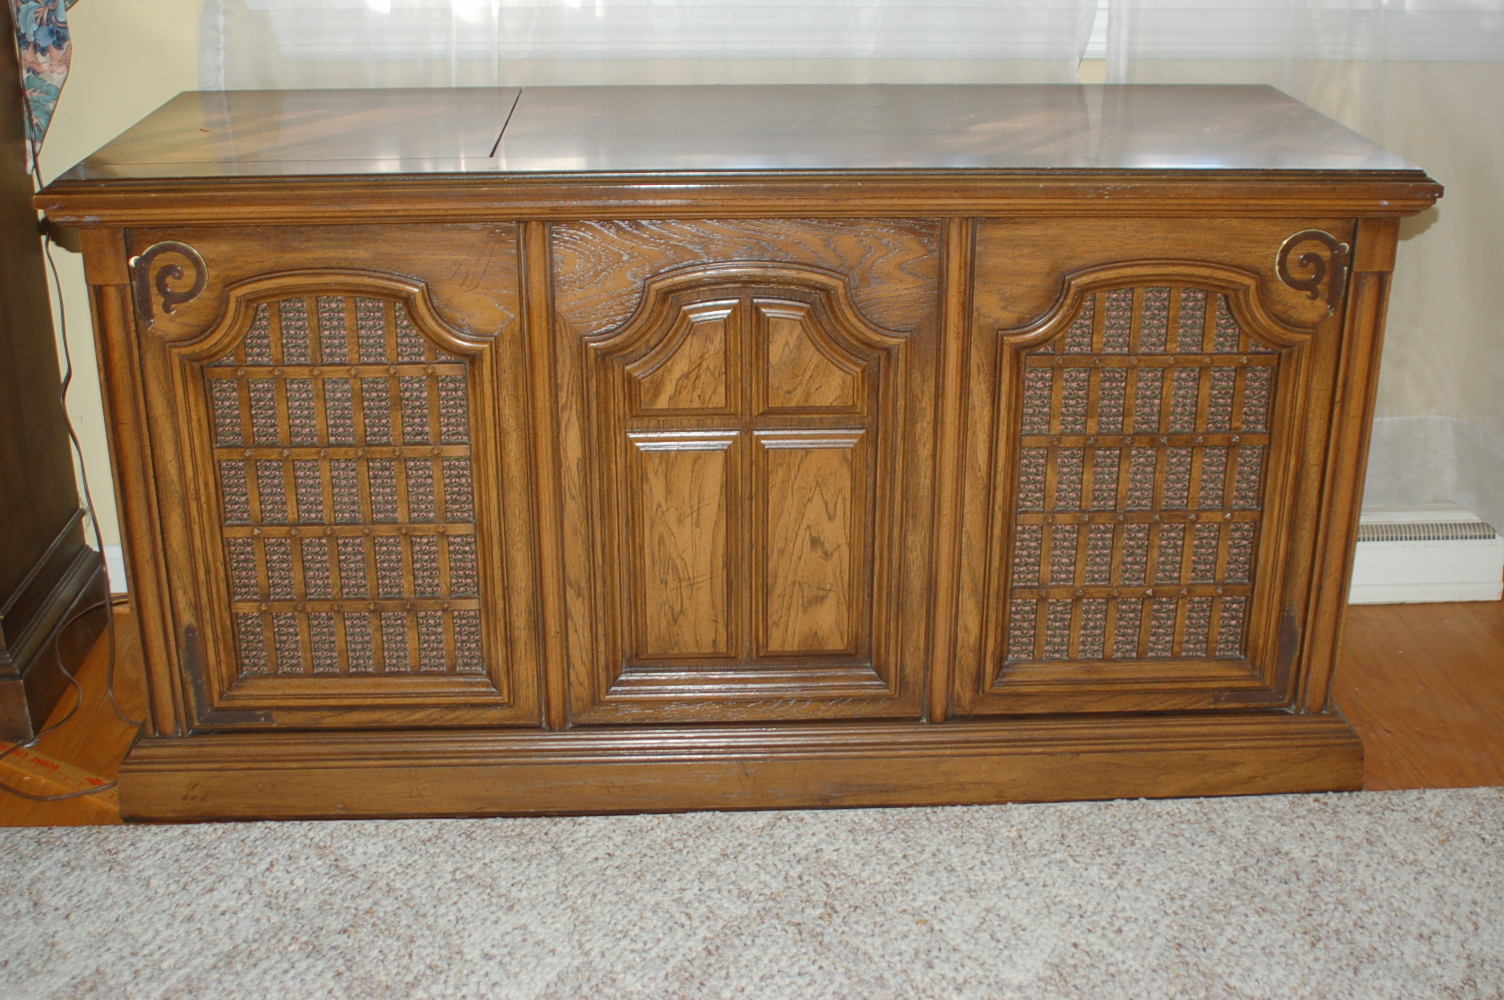 Magnavox Vintage Console Stereo : EBTH